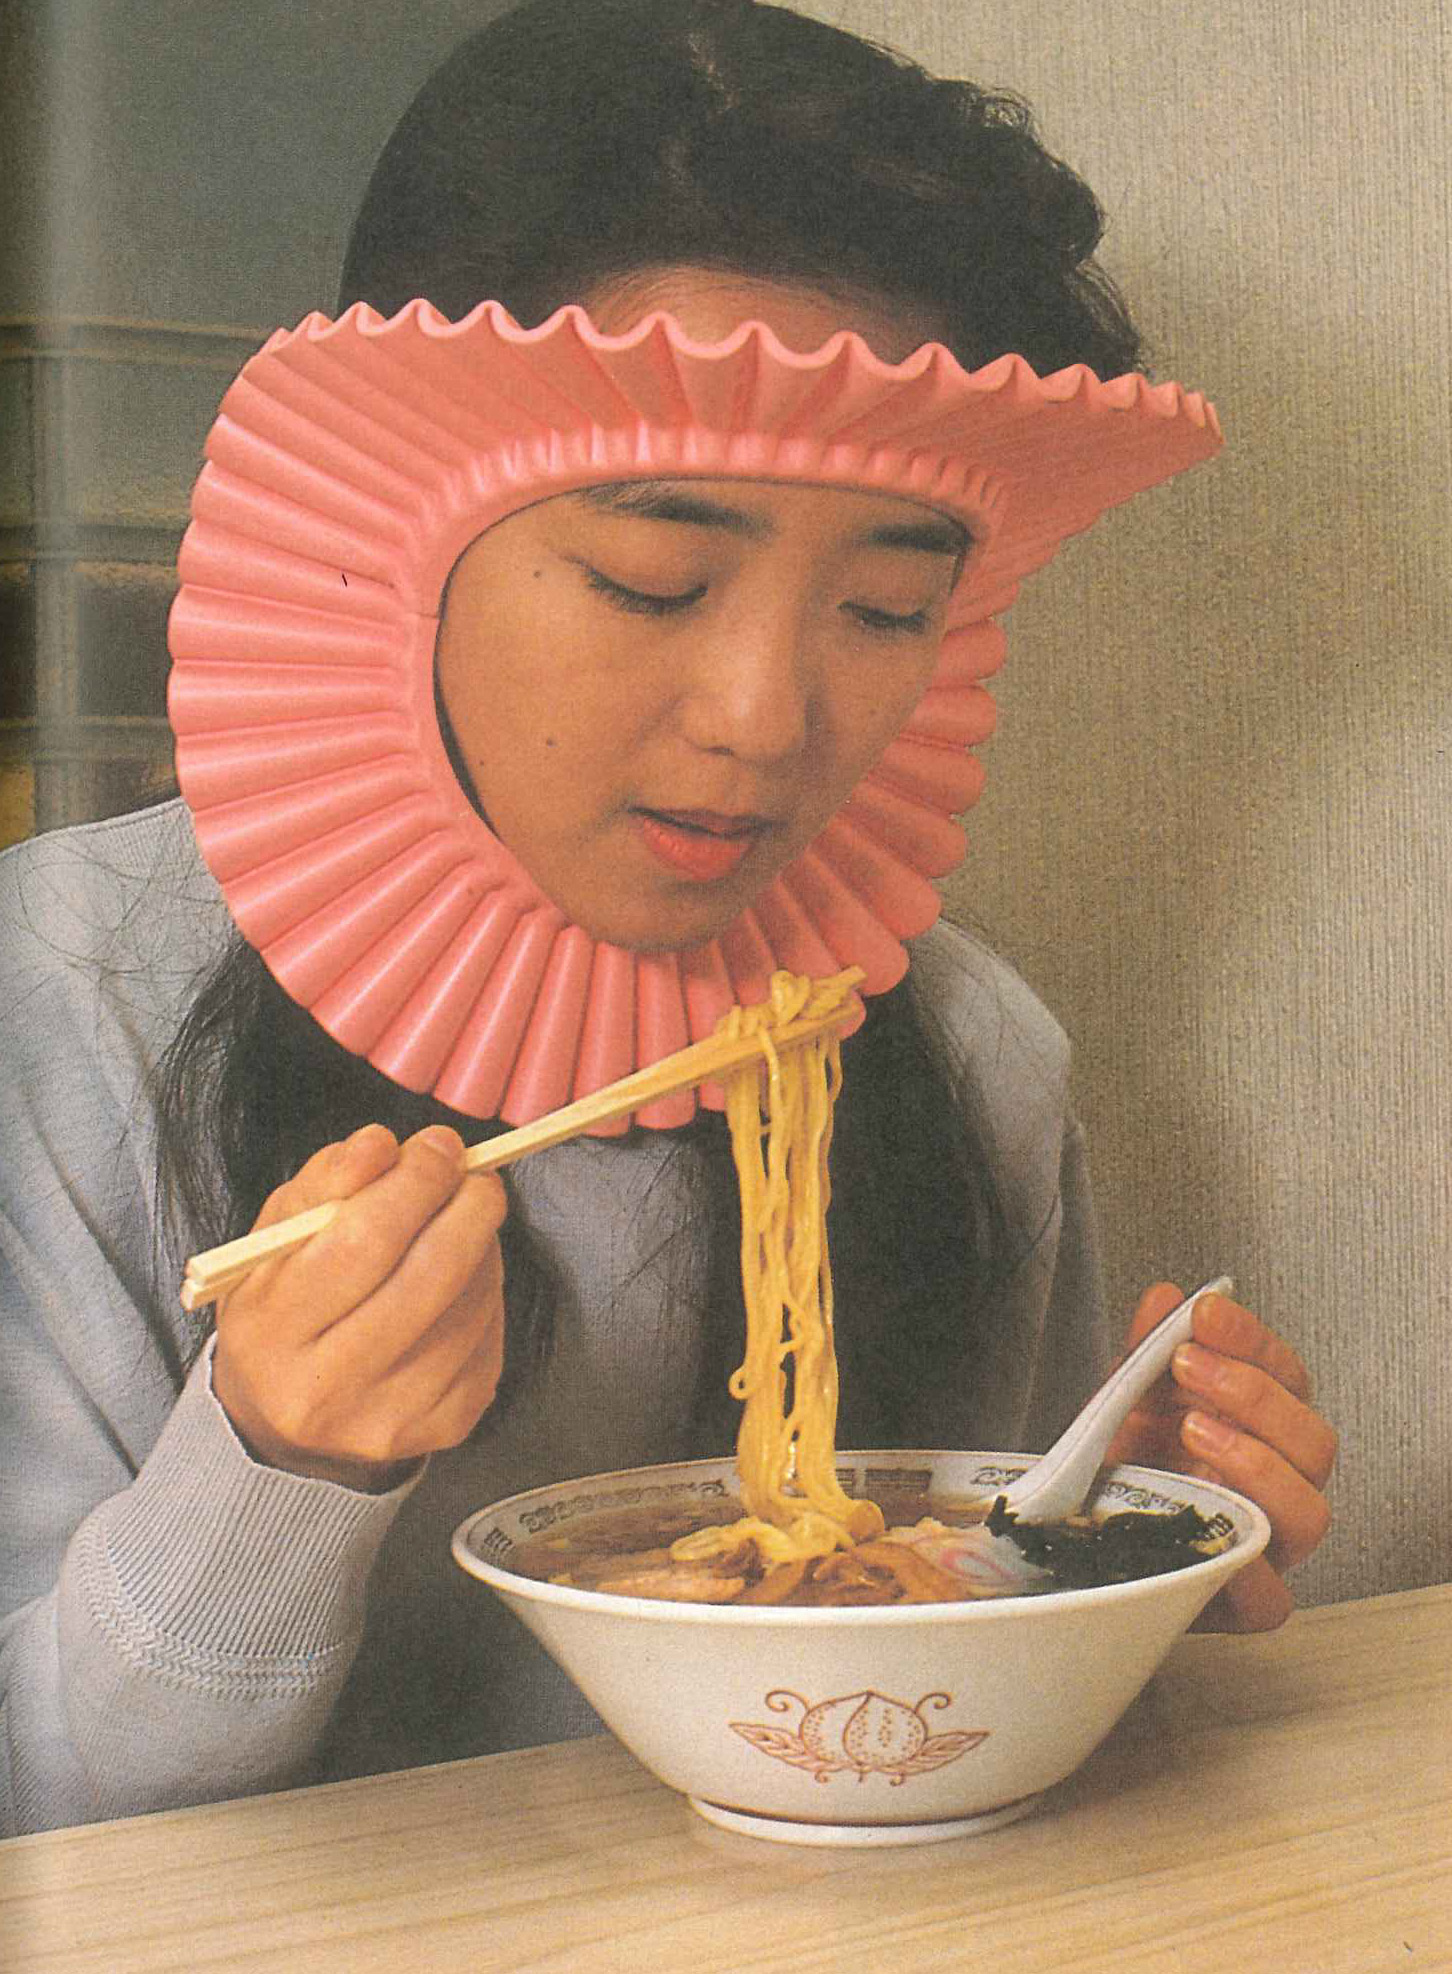 woman eating noodles wearing chindogu